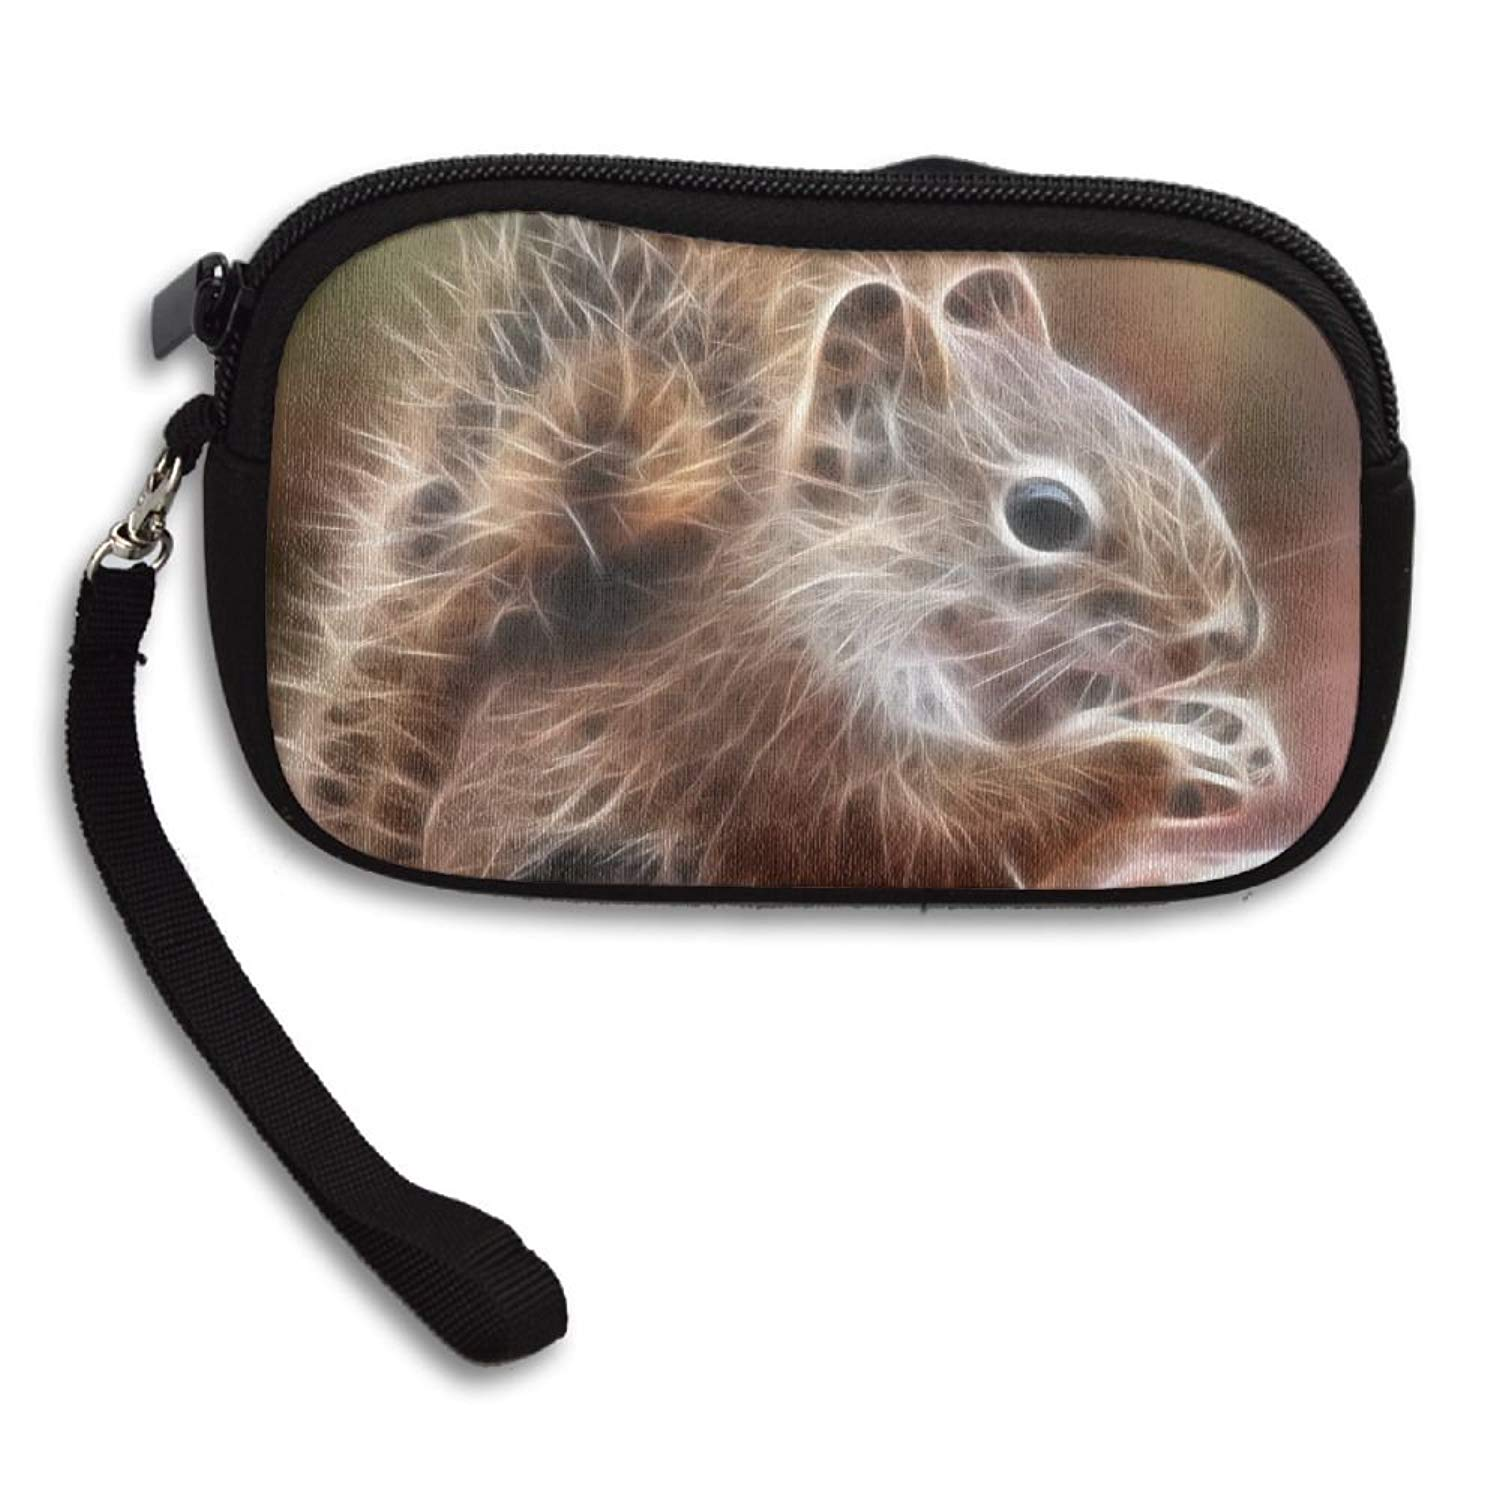 484197bd4f Get Quotations · Squirrel Futuristic Graphics Deluxe Printing Small Purse  Portable Receiving Bag